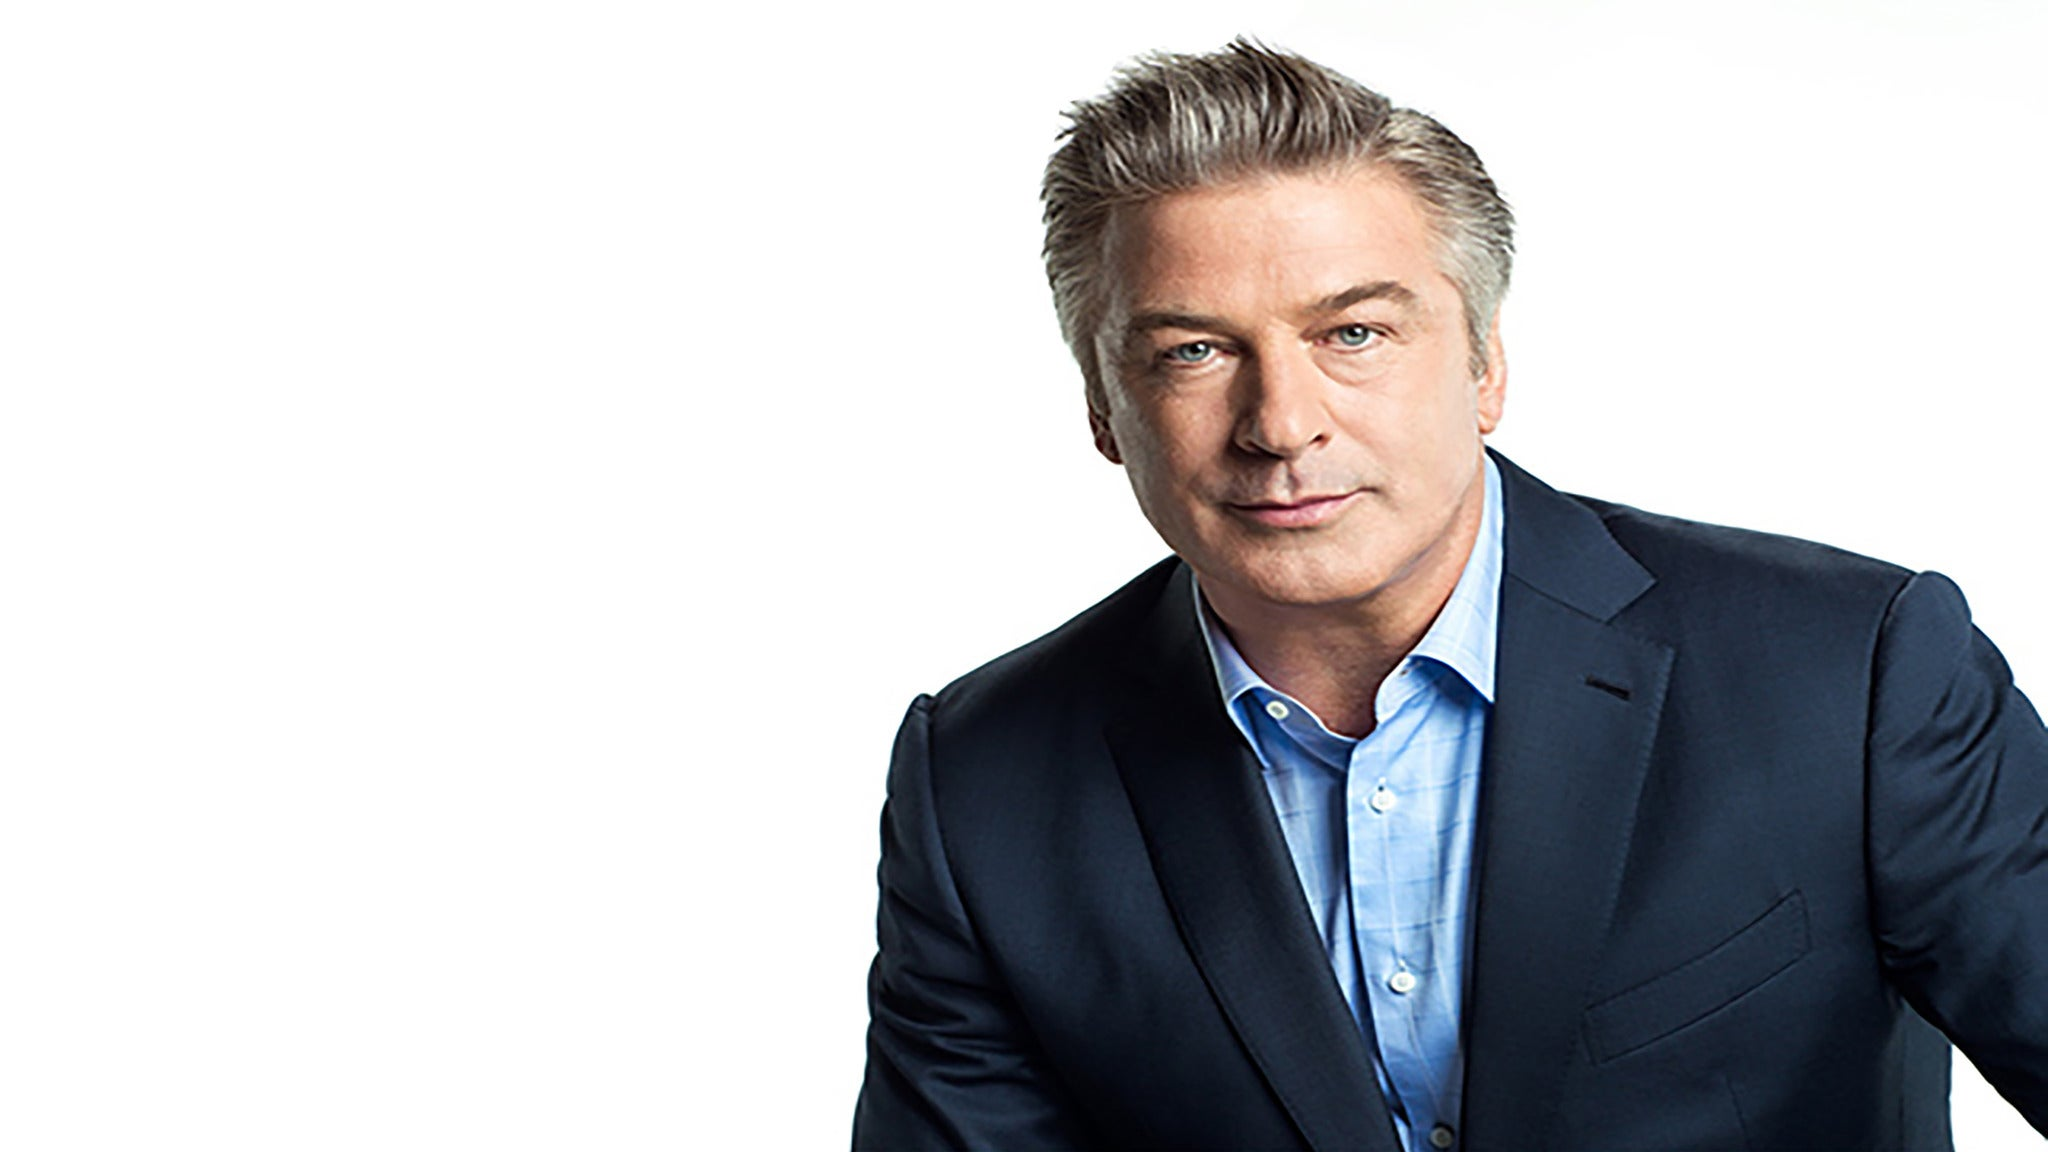 Alec Baldwin at Palace Theatre Stamford